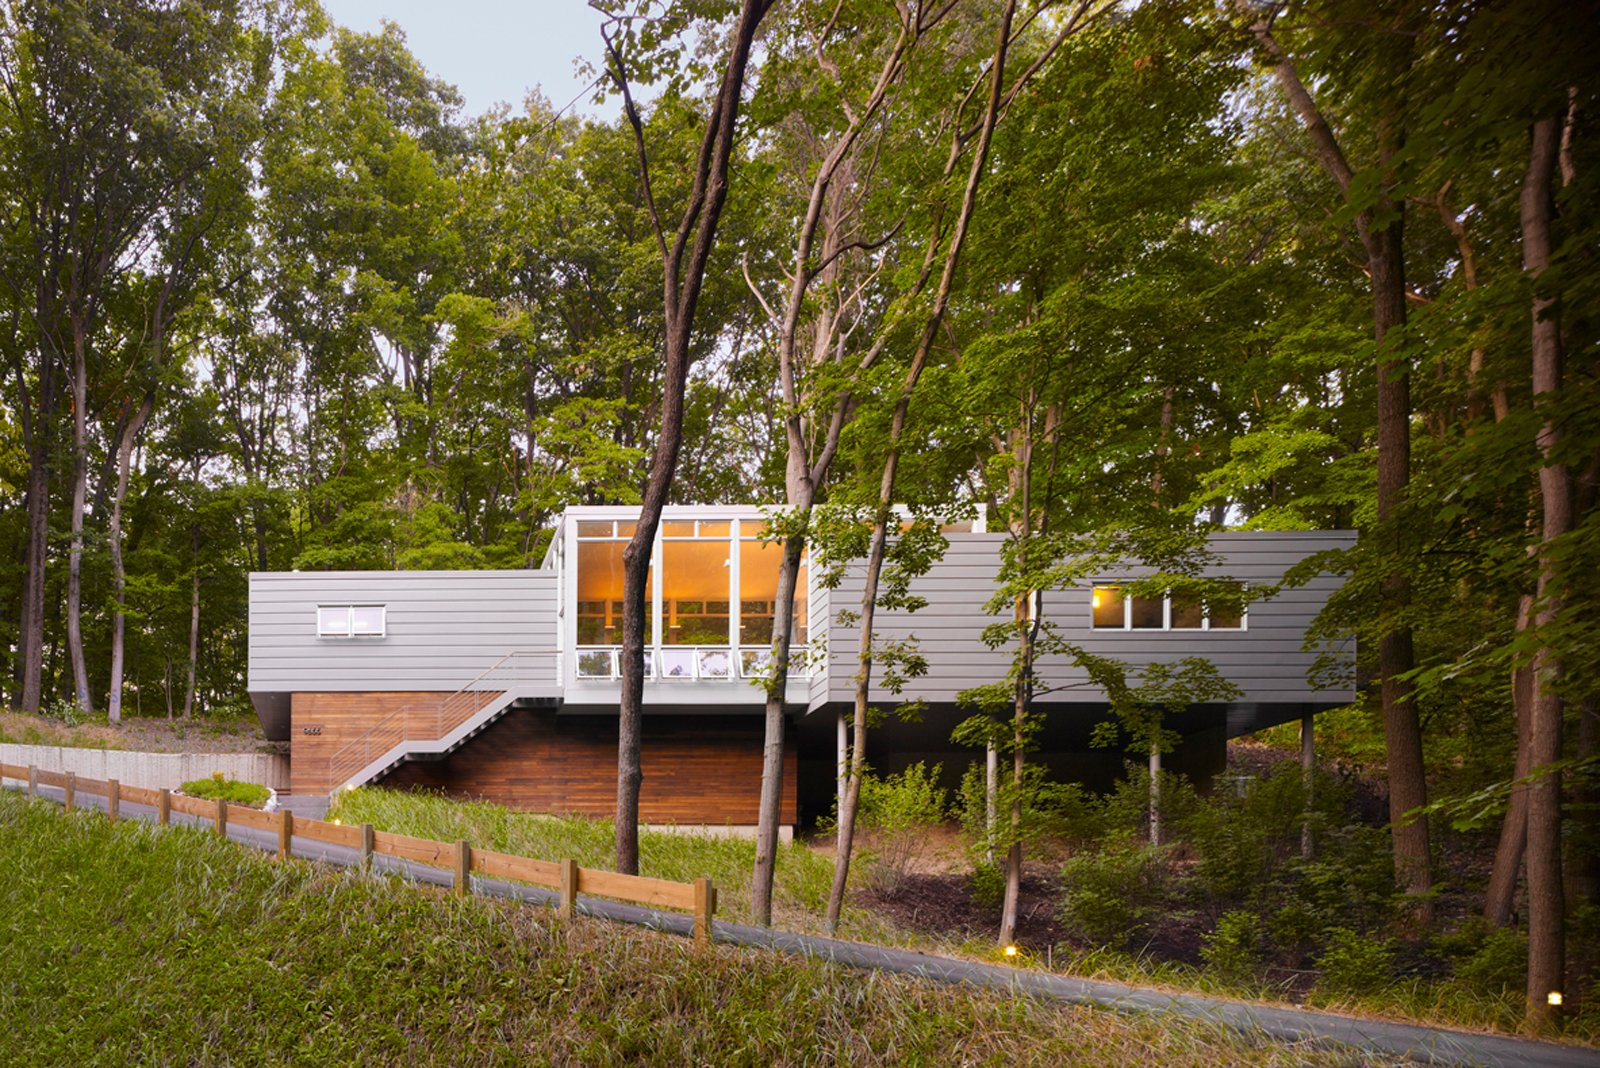 "Built on a challenging hillside site and tucked behind a thicket of trees, the Bridgman, Michigan, house designed by Scott Rappe provides a modern weekend retreat for a Chicago couple. ""One of my first responsibilities was getting the owners up to their house and essentially on one level. Because of the pie-shaped property, we needed to push the building up the hill to provide square footage for the program. By keeping the building perpendicular to the slope, using piloti on one side and a retaining wall on the dune side, we were able to insert foundations with minimal disturbance,"" says Rappe.  20 Best Modern Homes from the Midwest by Erika Heet from Michigan Modern: 7 Homes in the Great Lake State"